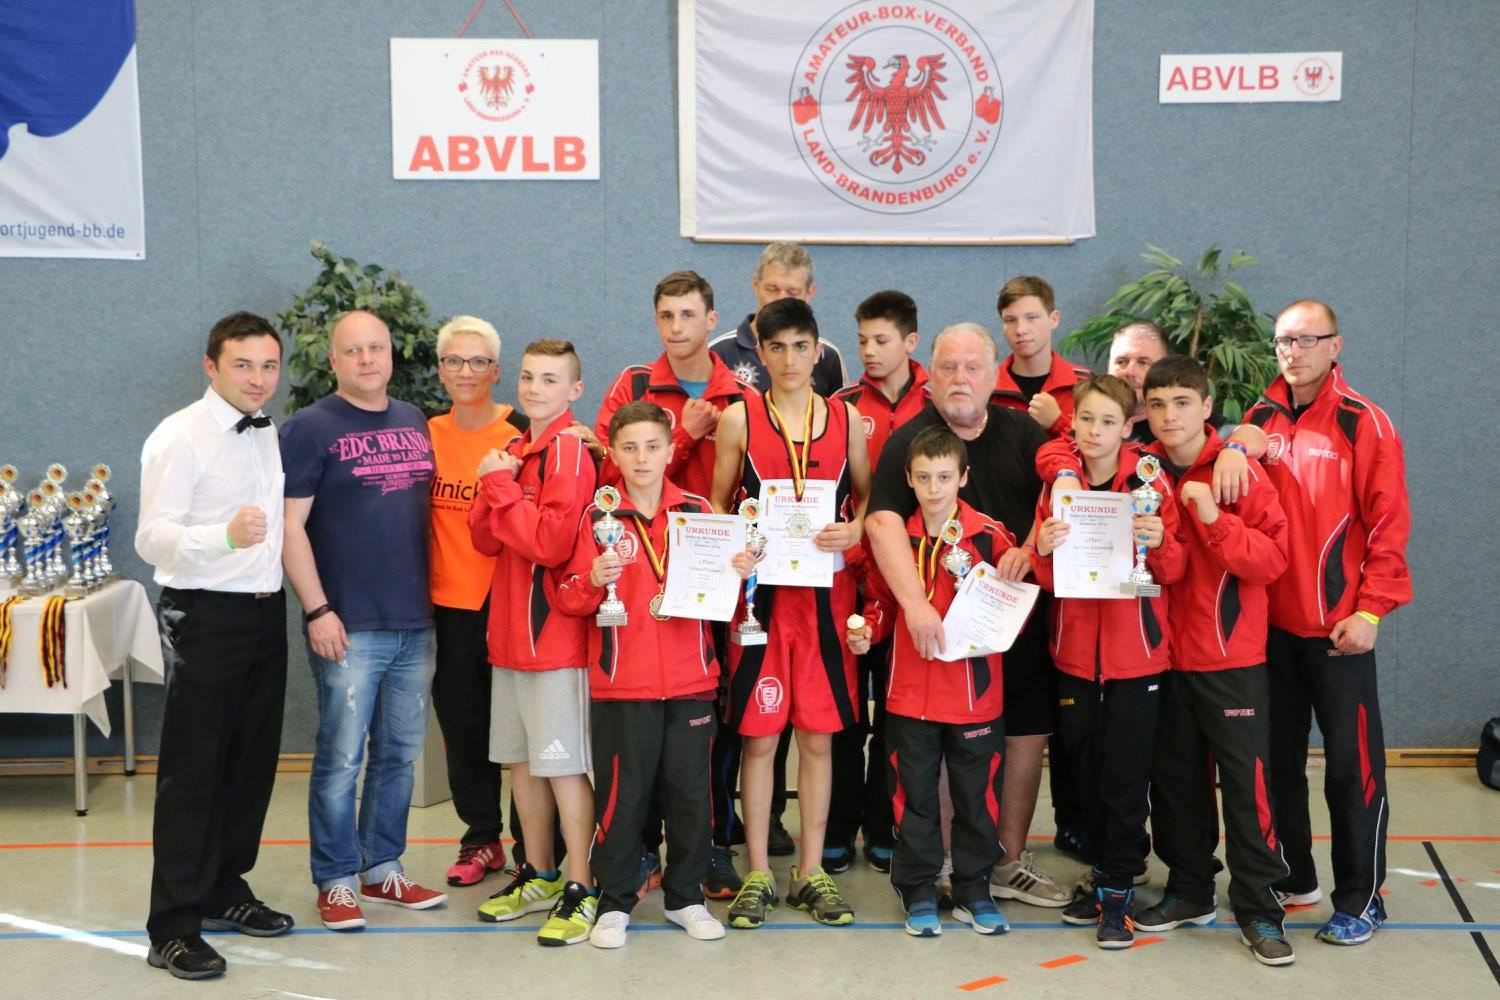 Kadetten DM 2015 in Lindow